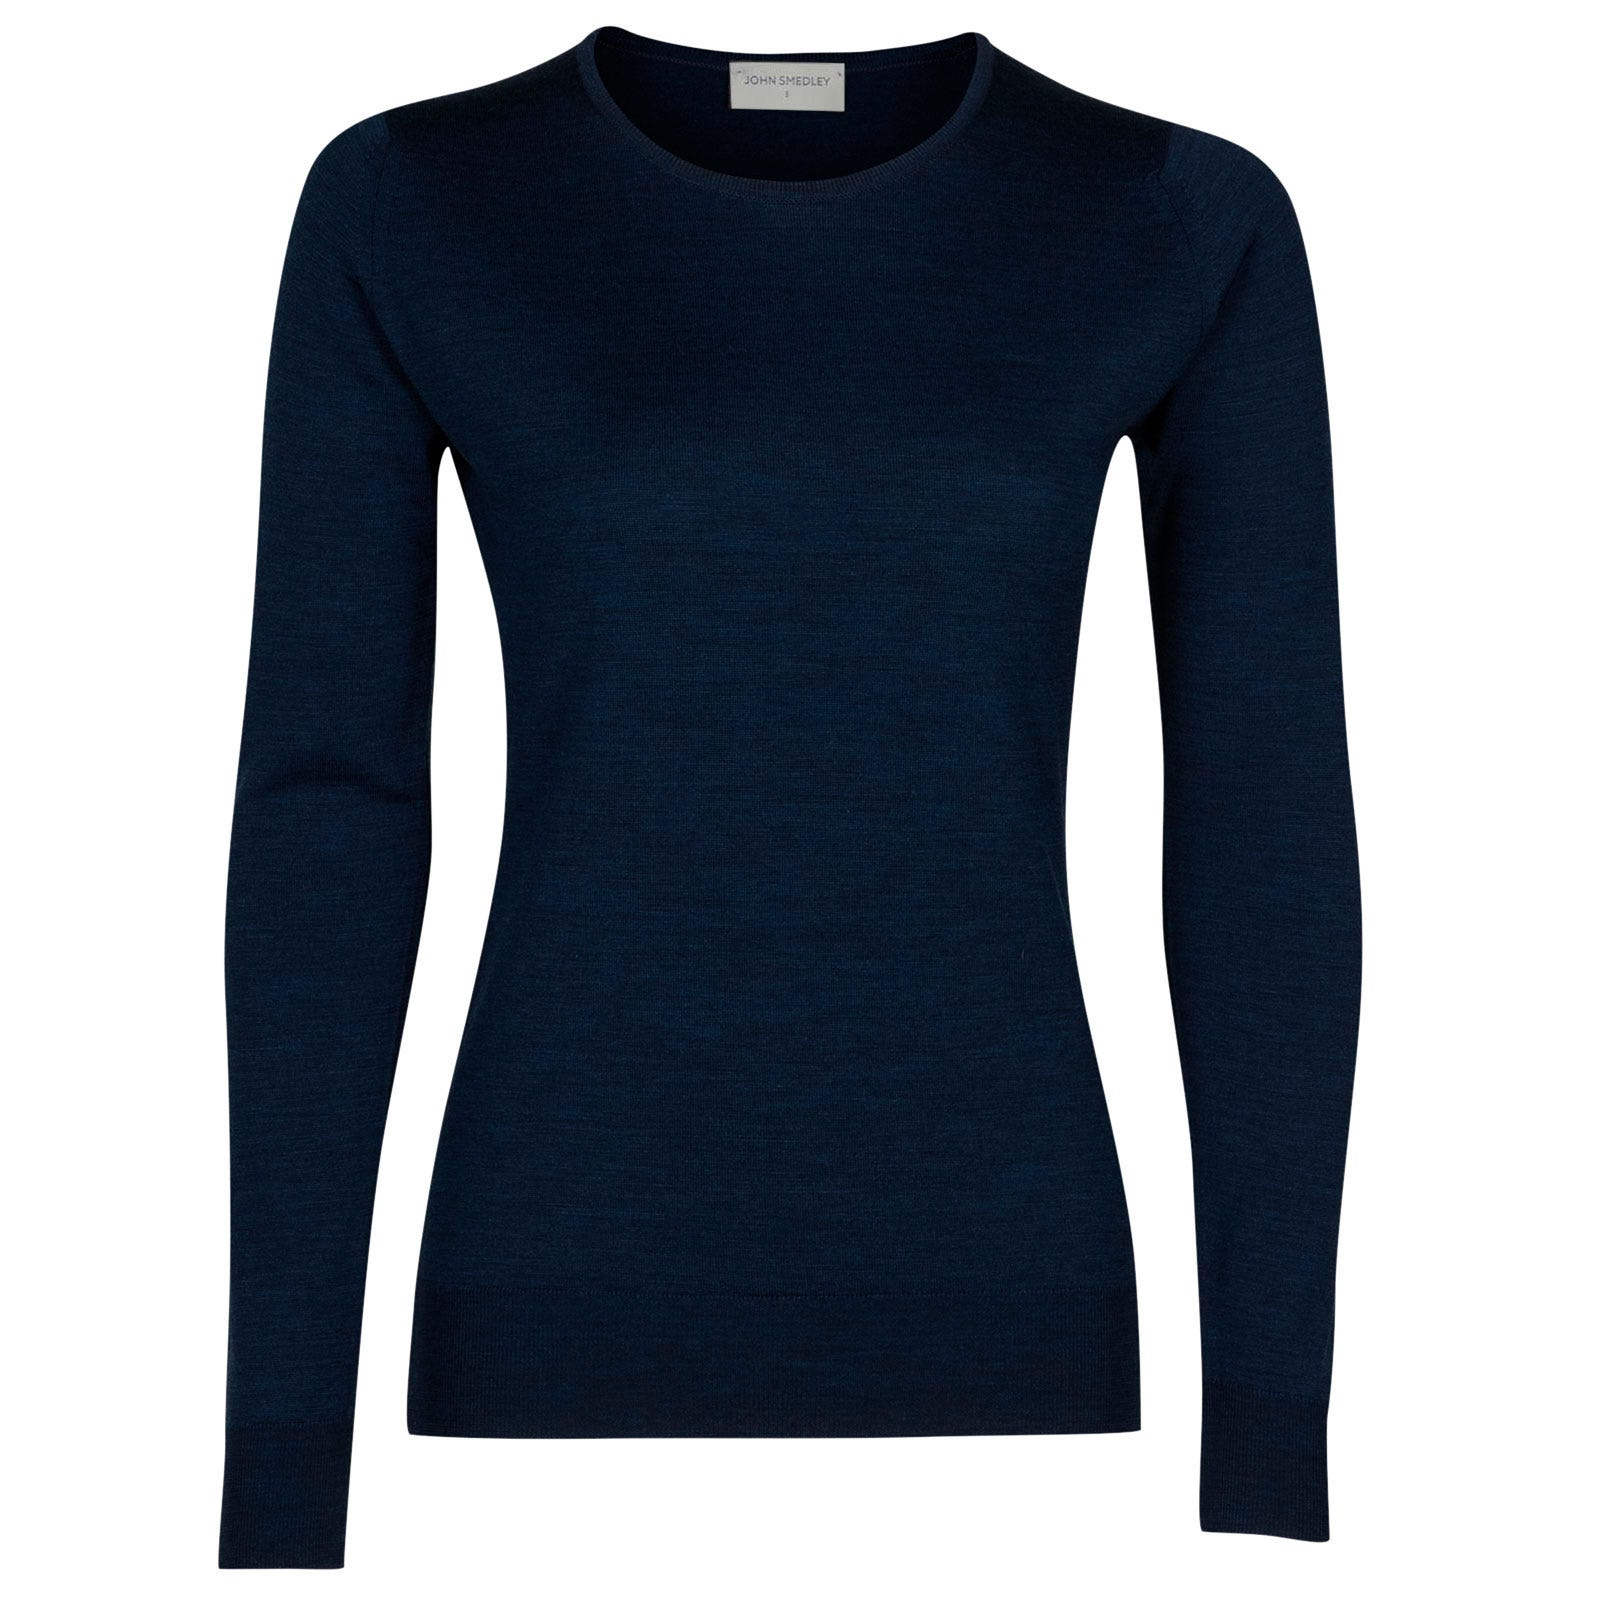 John Smedley geranium Merino Wool Sweater in Indigo-XL